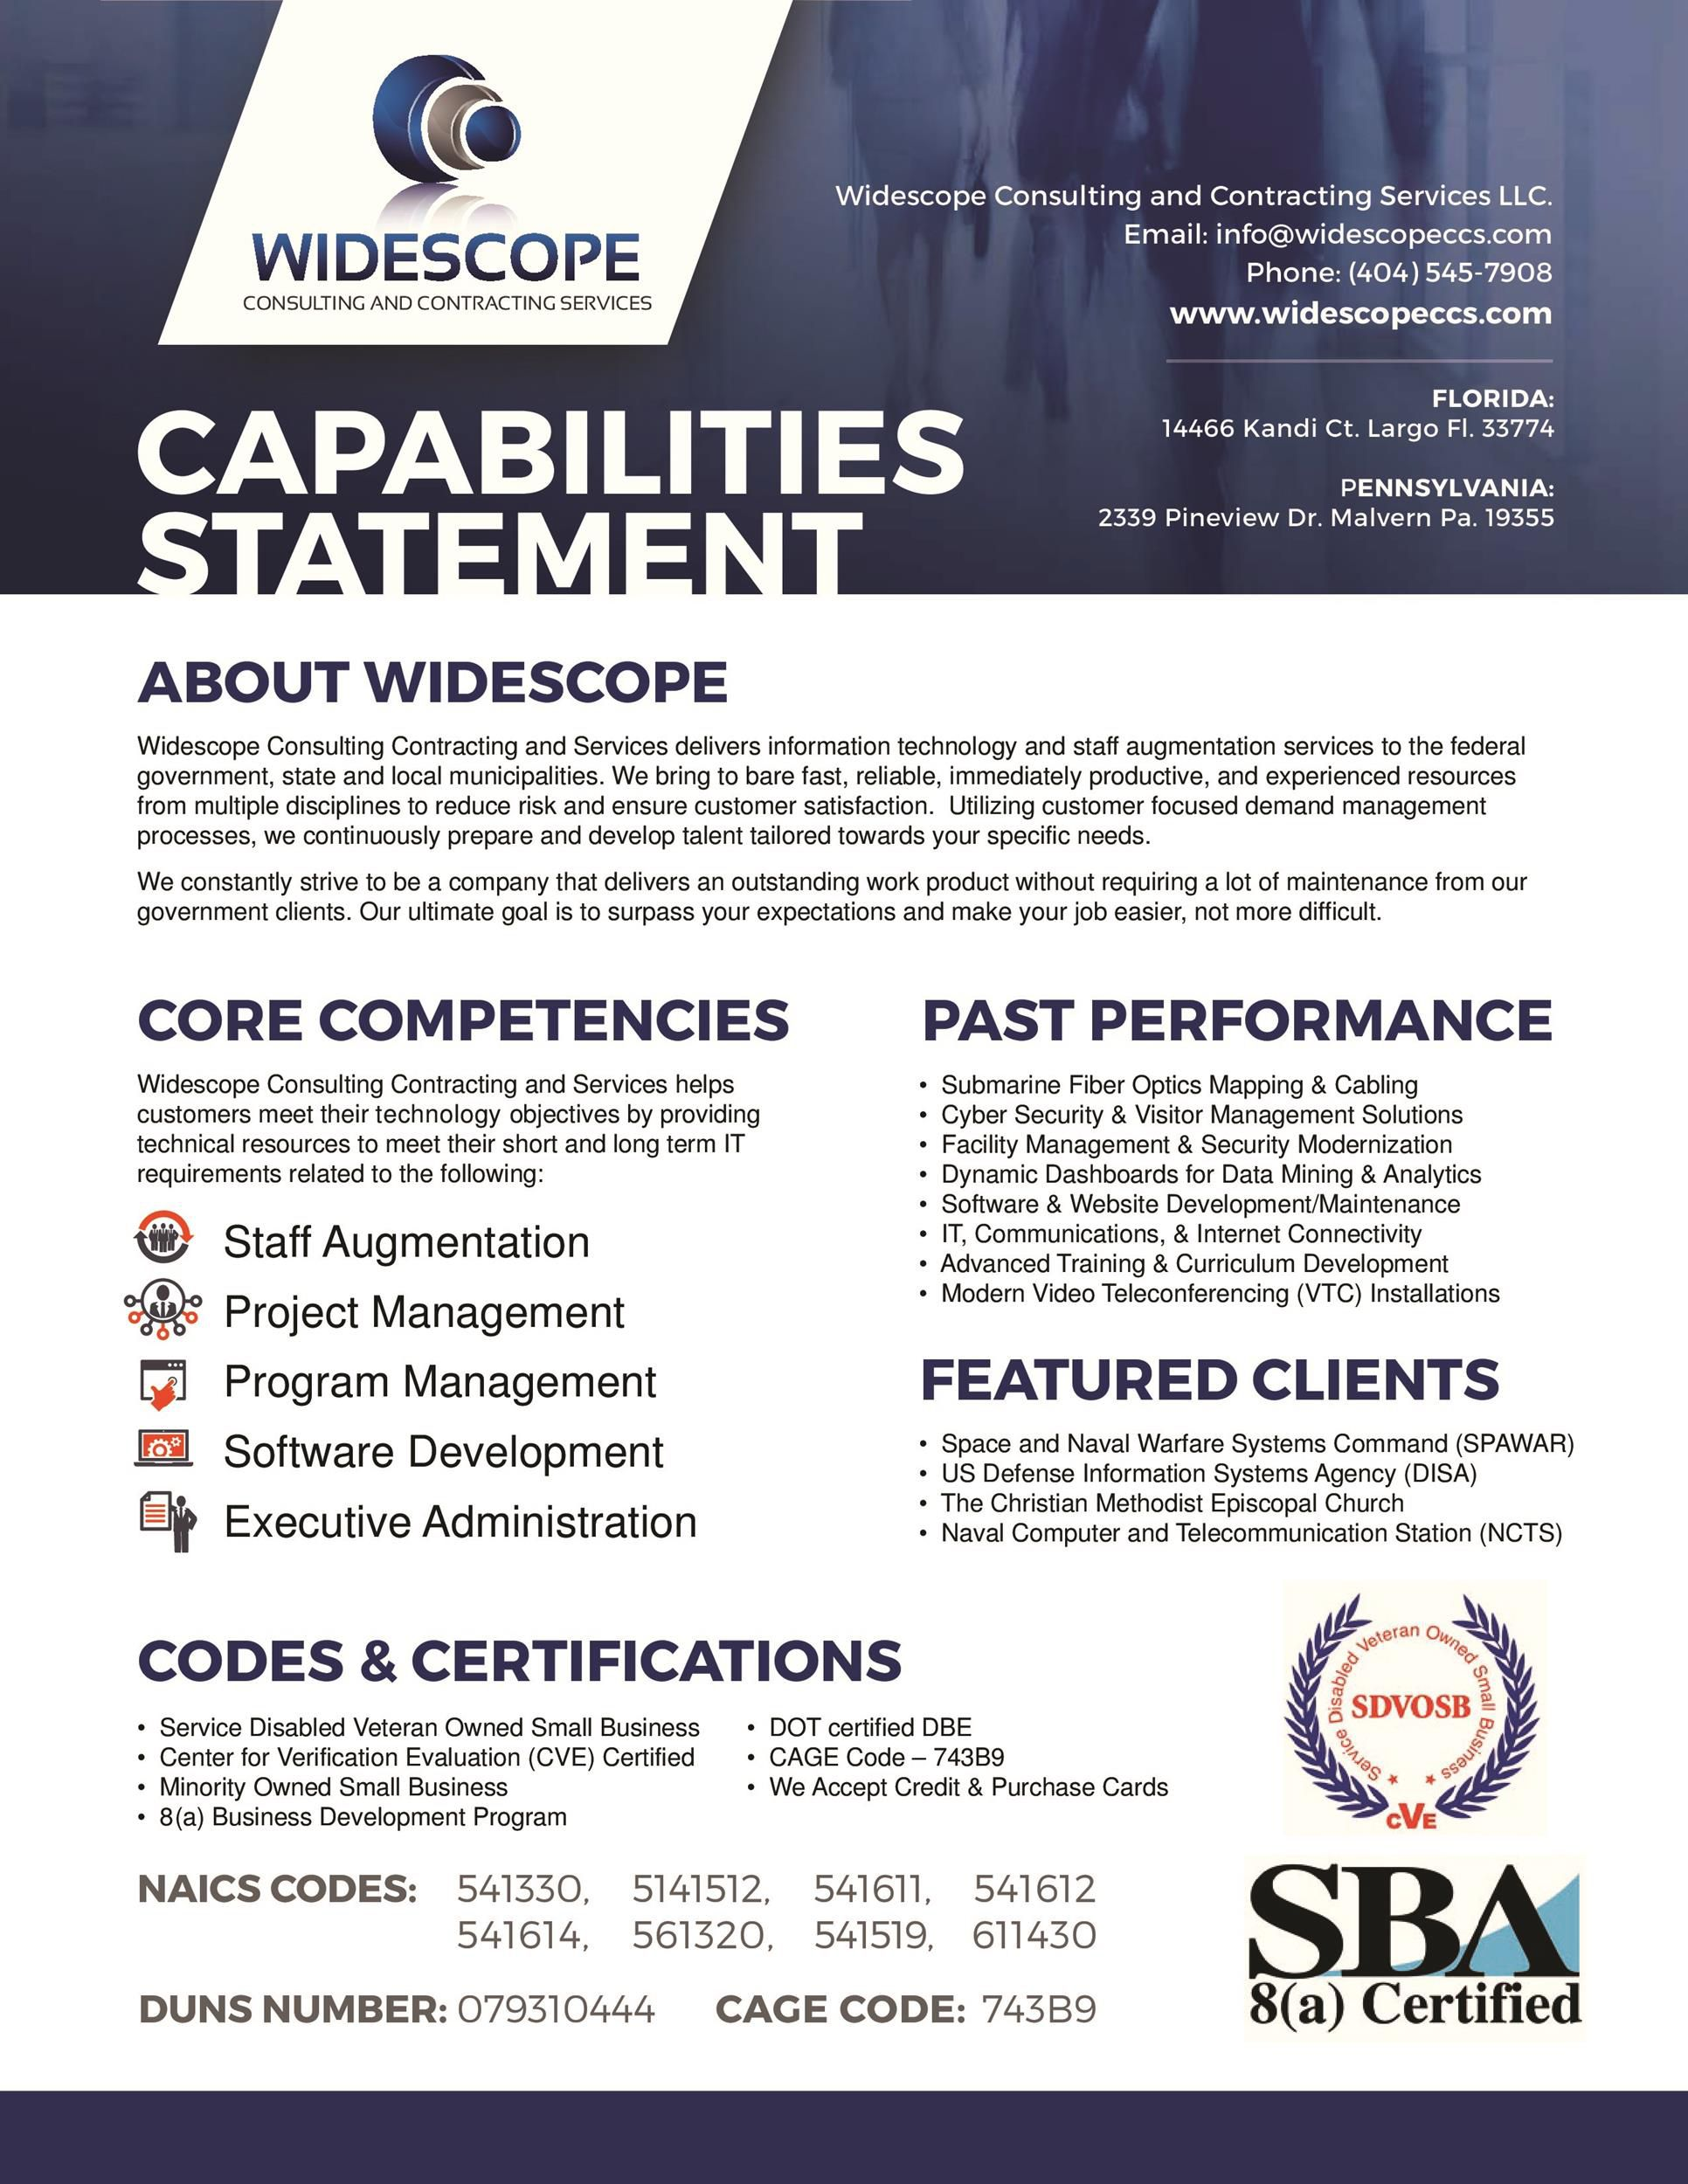 008 Astounding Capability Statement Template Word Doc Photo  Document FreeFull